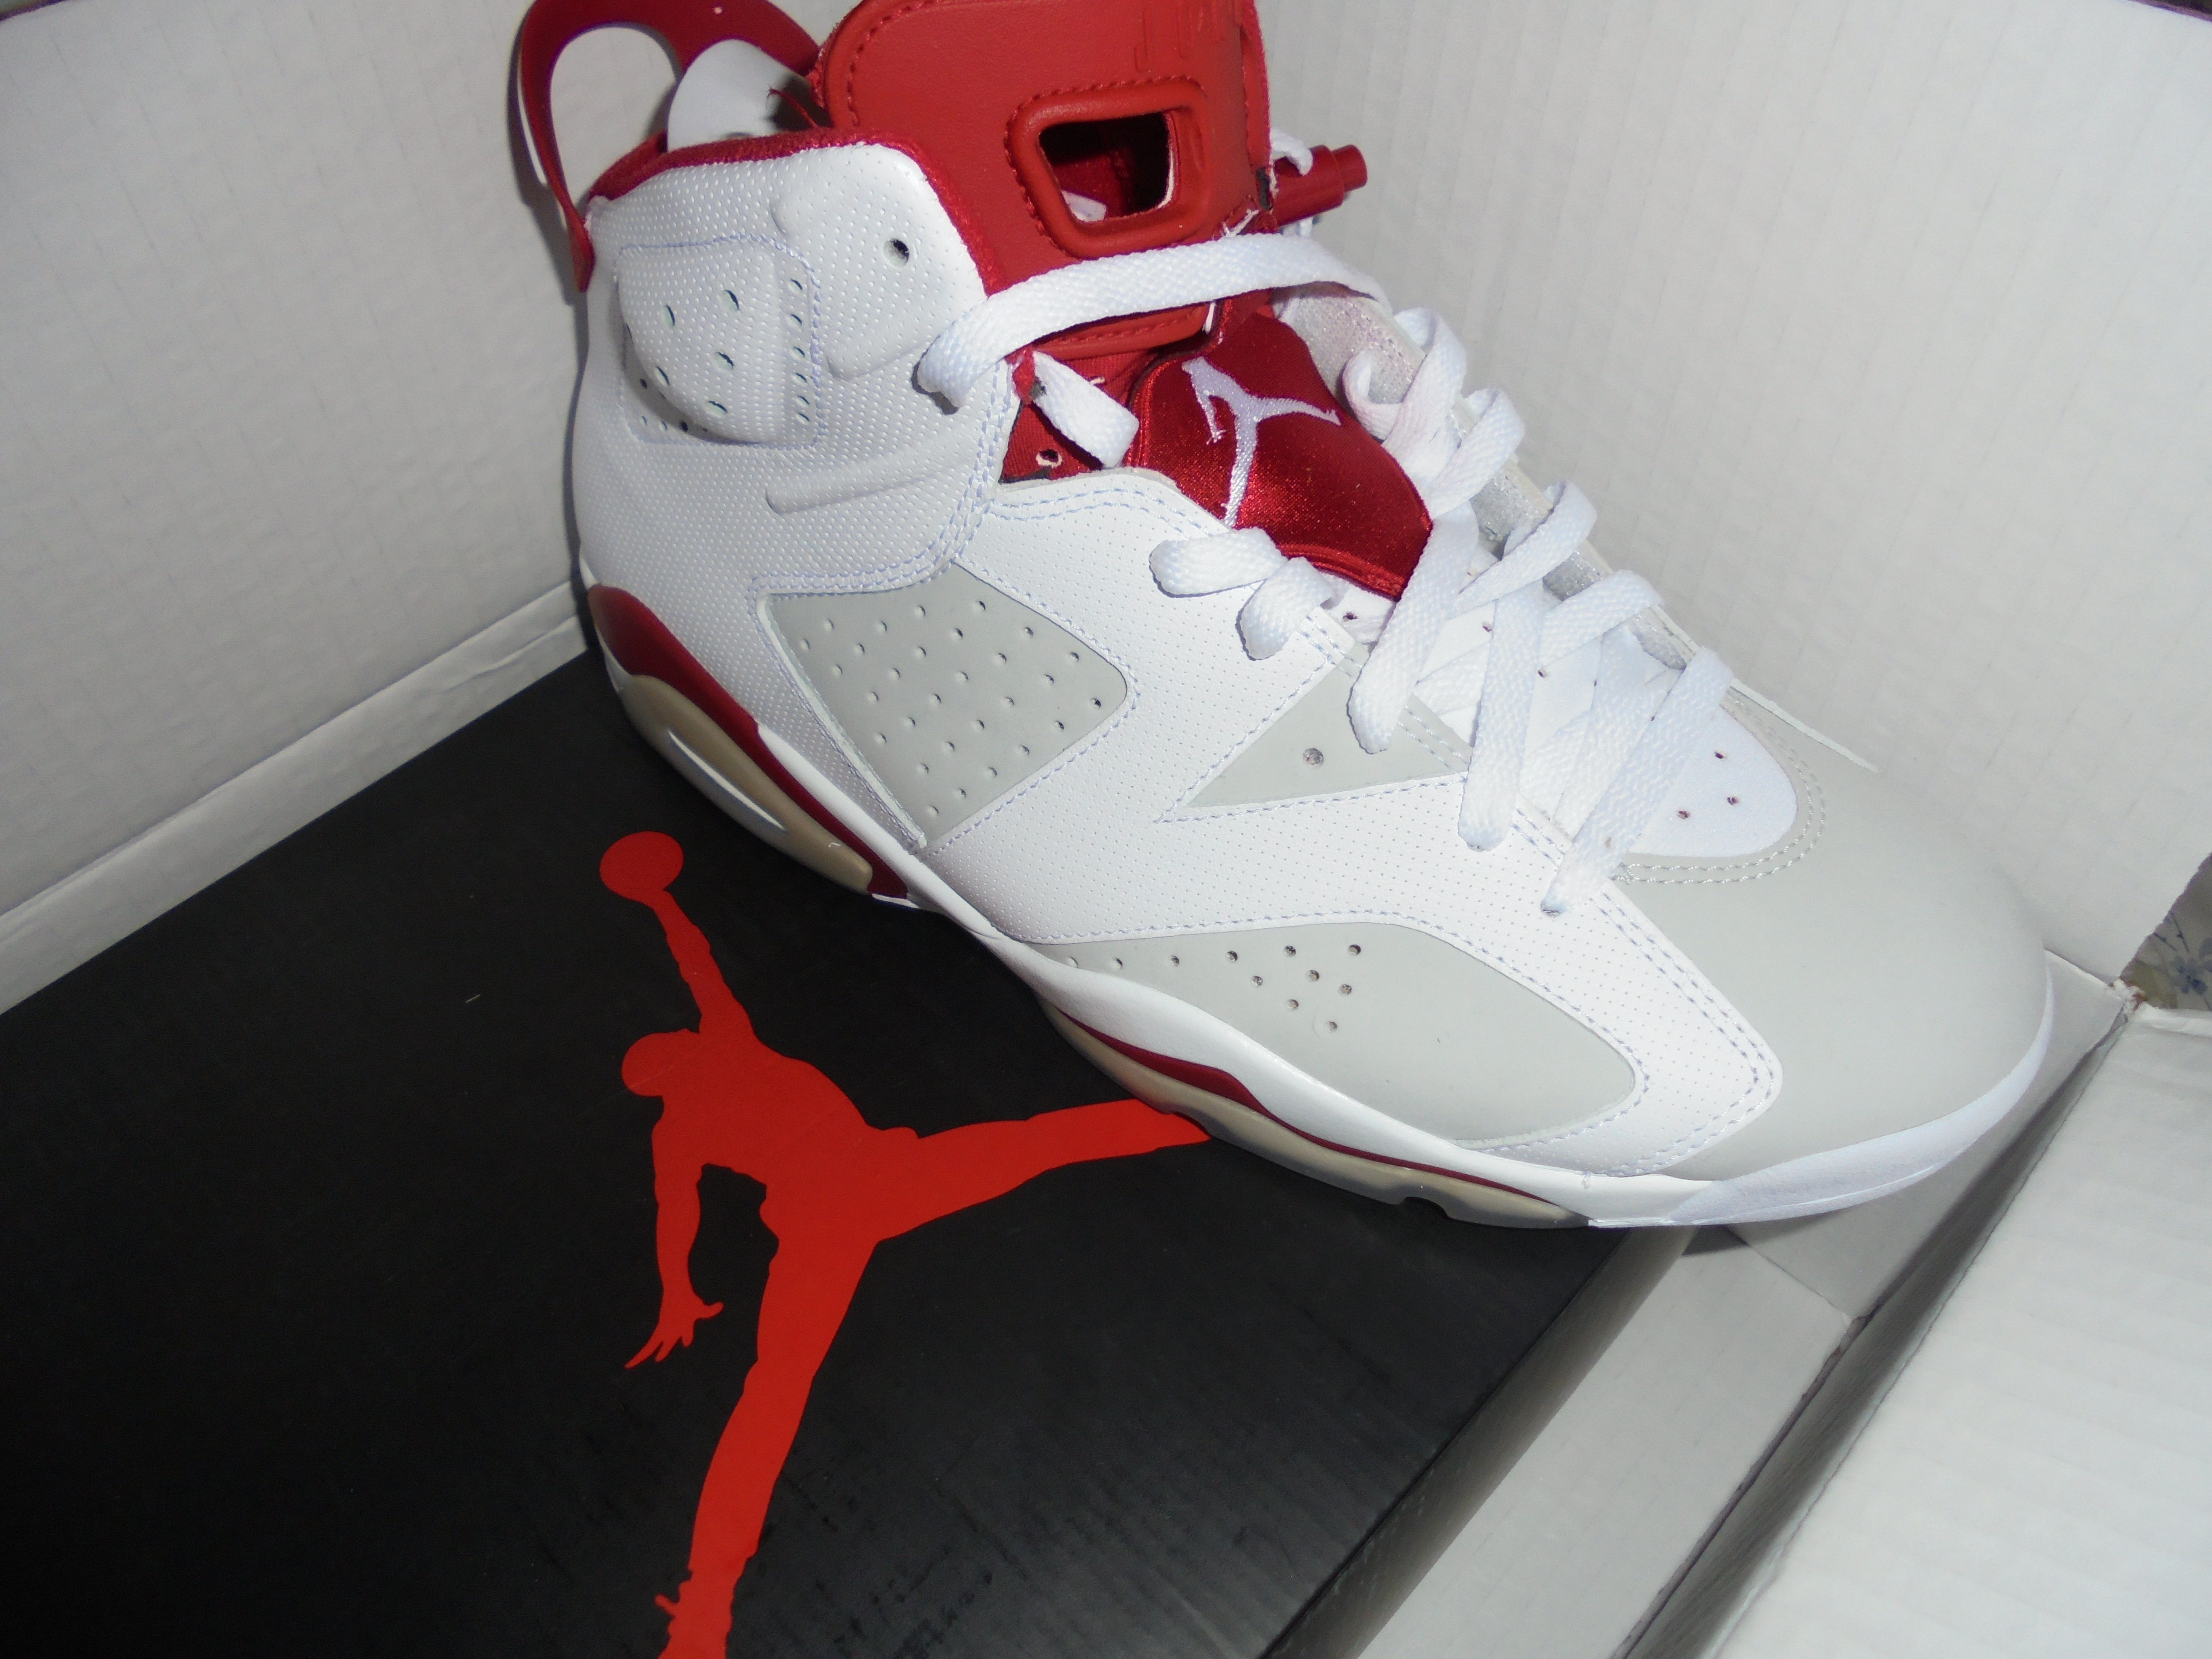 #Rightfoot of #AirJordanRetro6Alternate #MichaelJordanSneaker by #Nike - http://www.drewrynewsnetwork.com